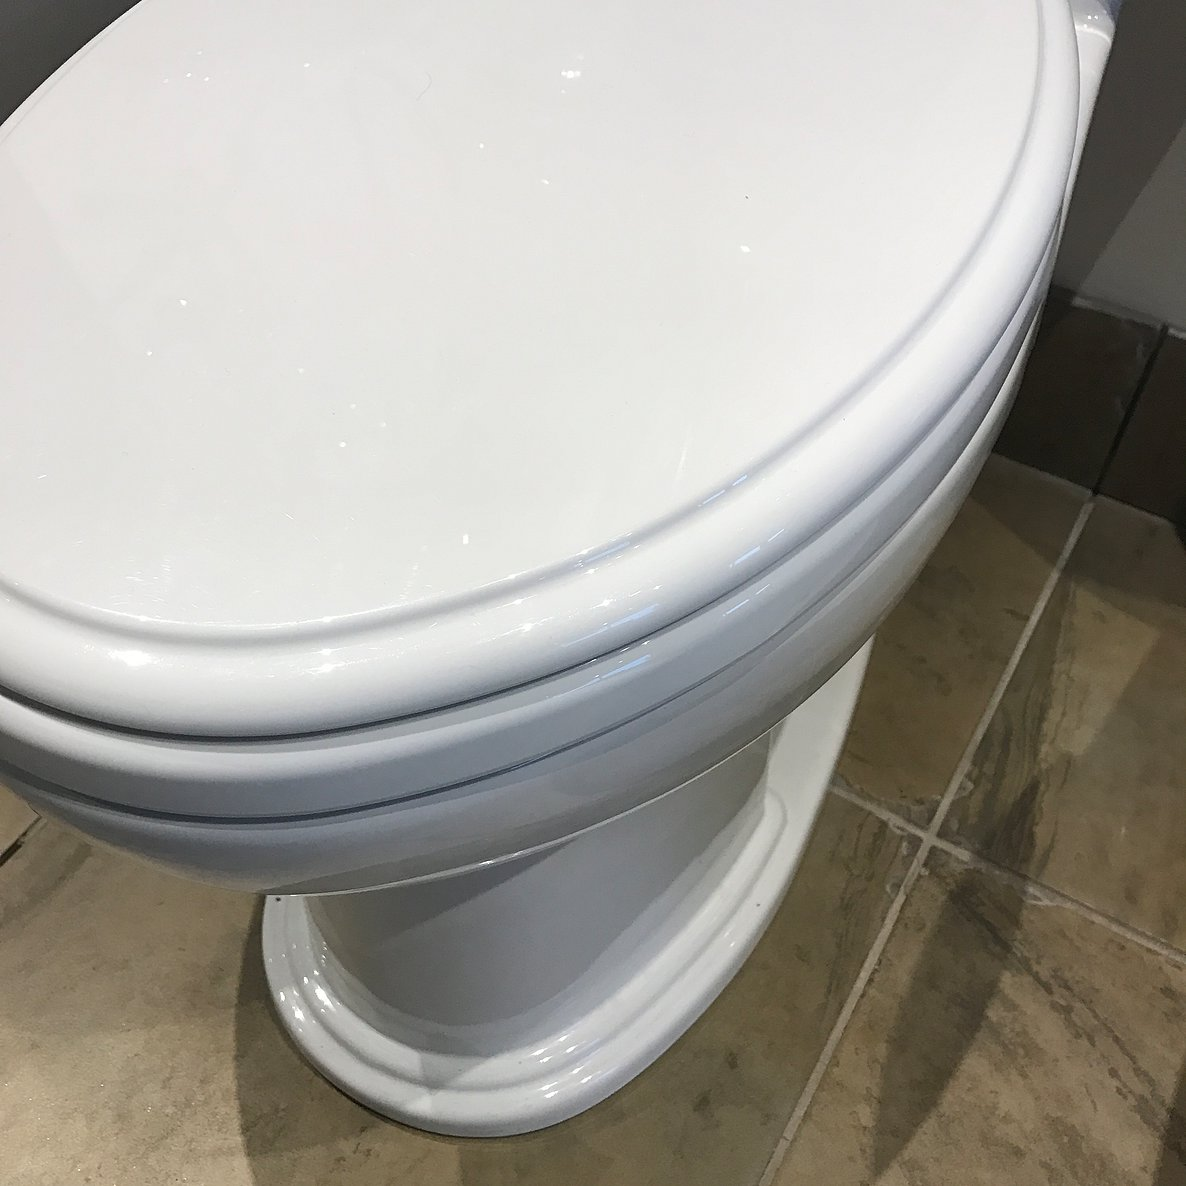 Have A Moder Toilet with Toto Toilet: Toto Toilet | Toto Washlet | Toto Aquia Wall Hung Toilet Review